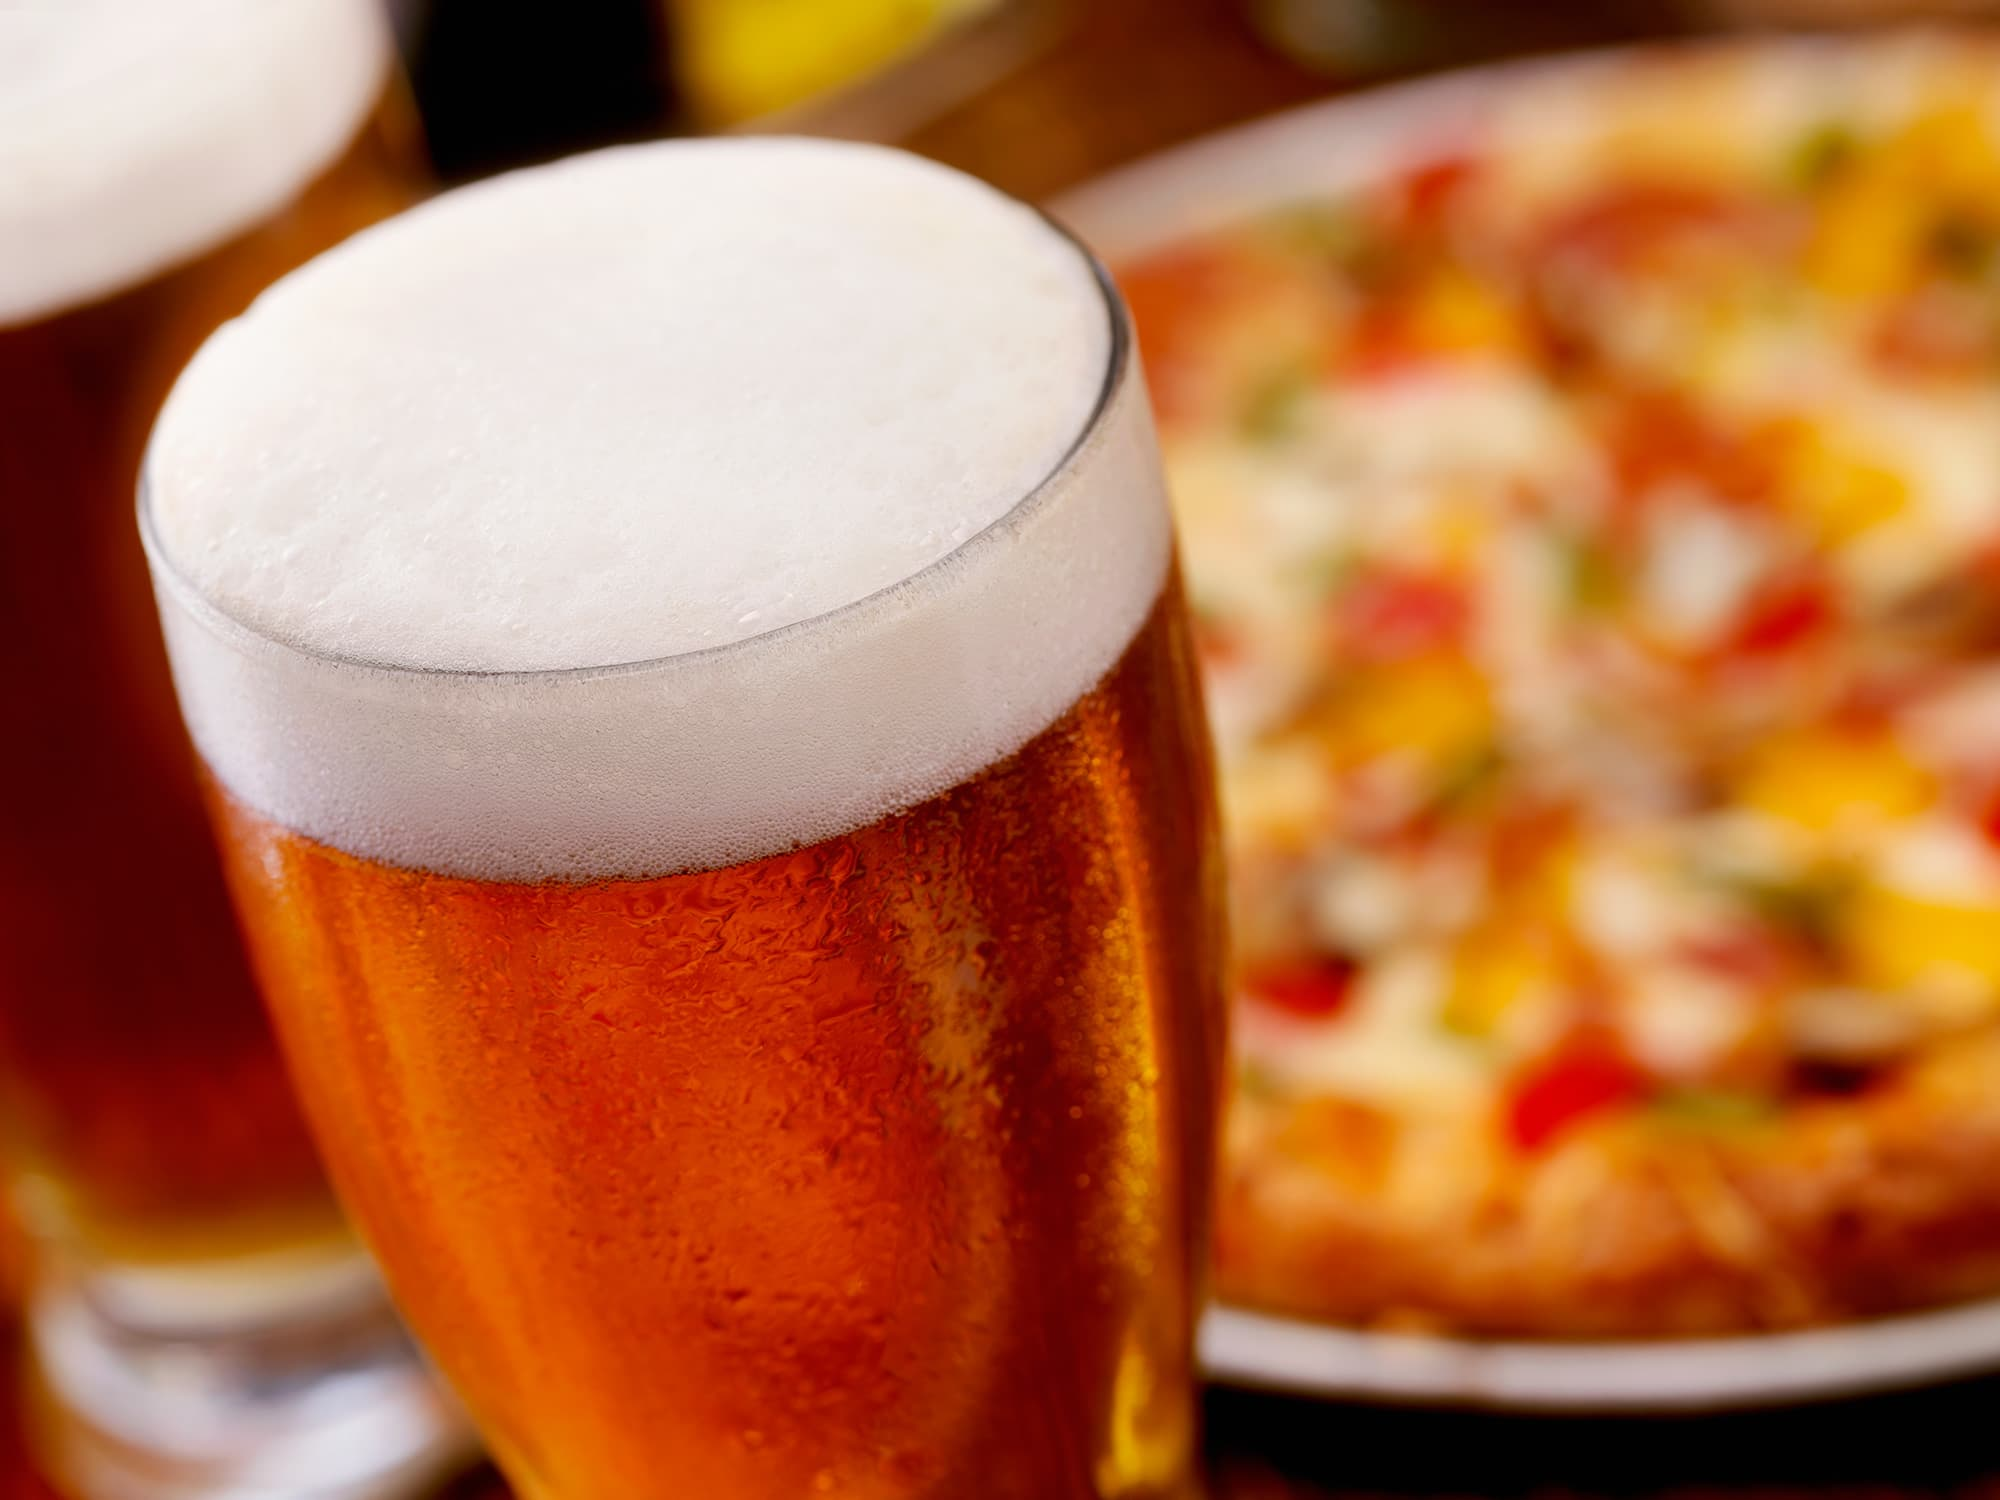 Pizza Hut to test beer delivery in Phoenix